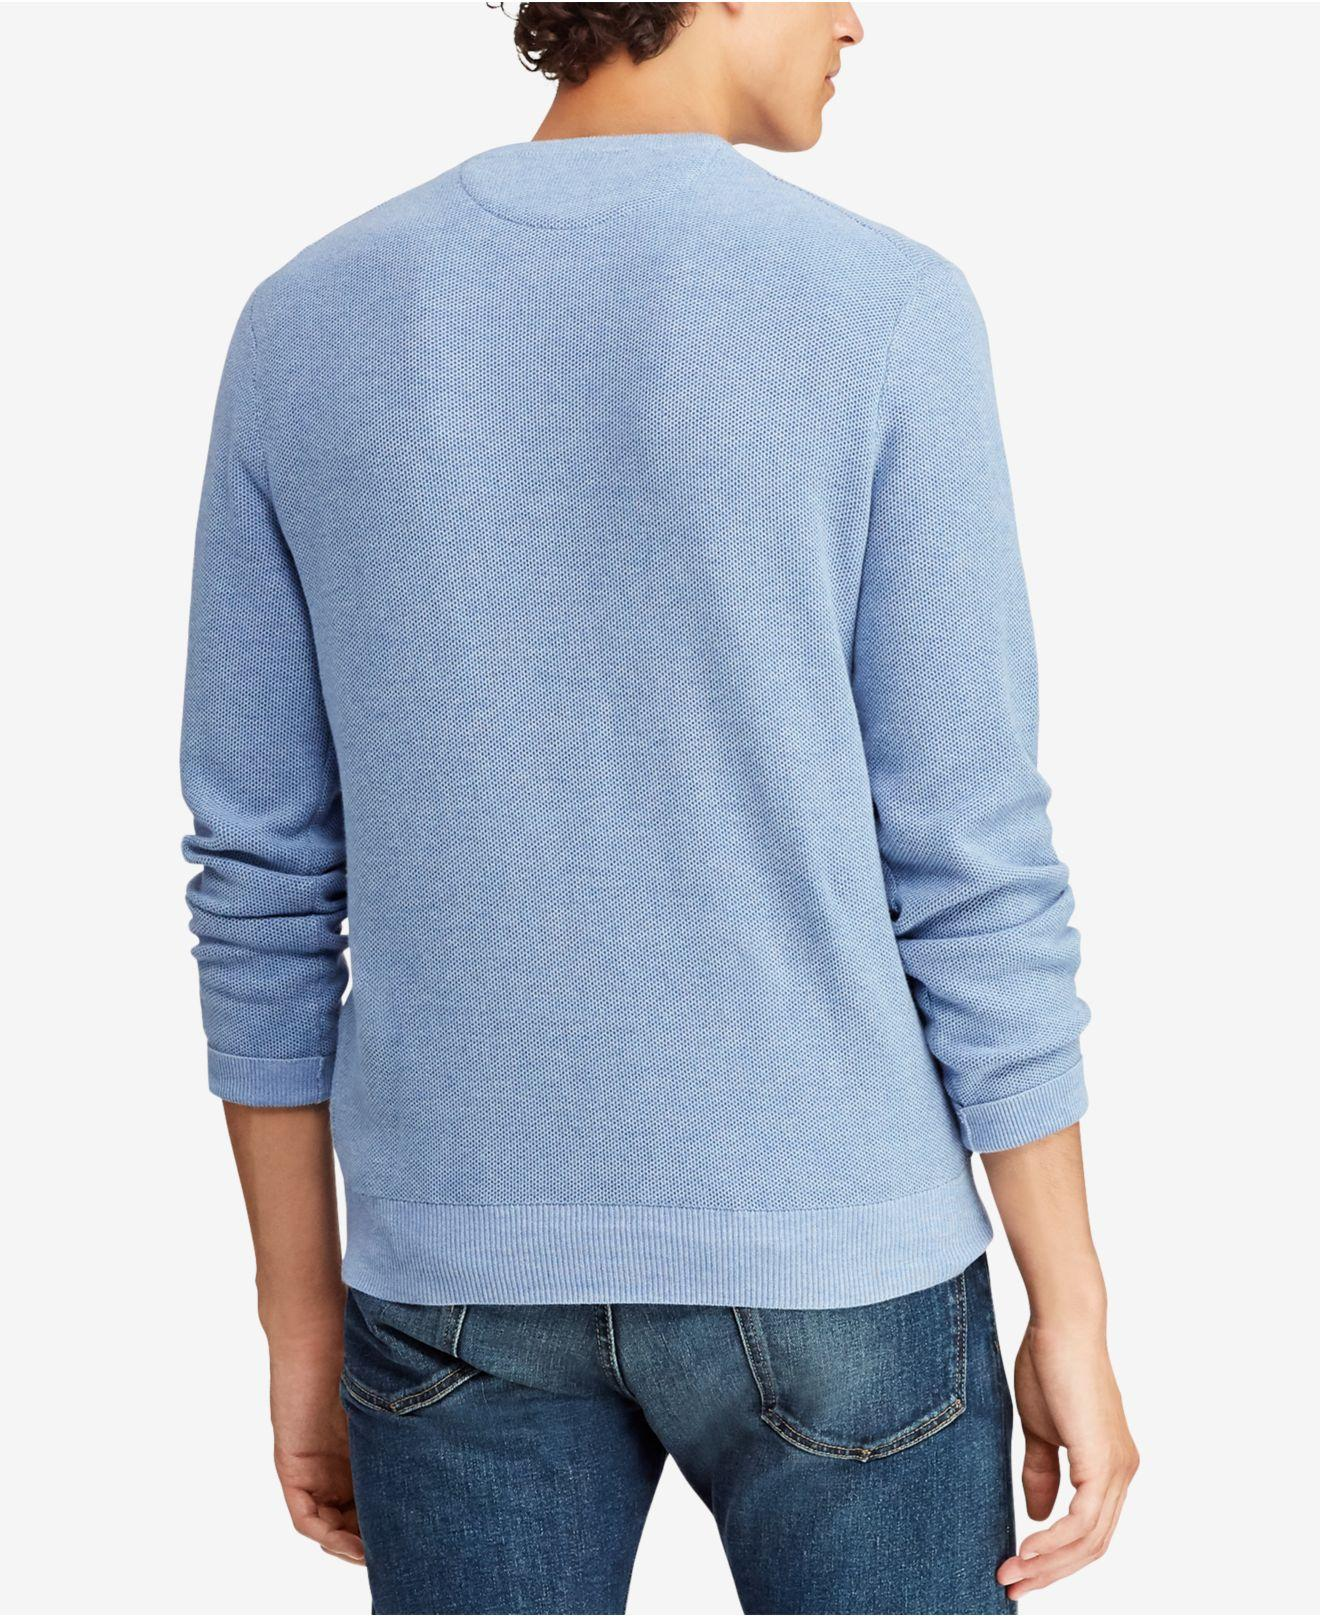 005cf5e3a3cfd Lyst - Polo Ralph Lauren Crew Neck Sweater in Blue for Men